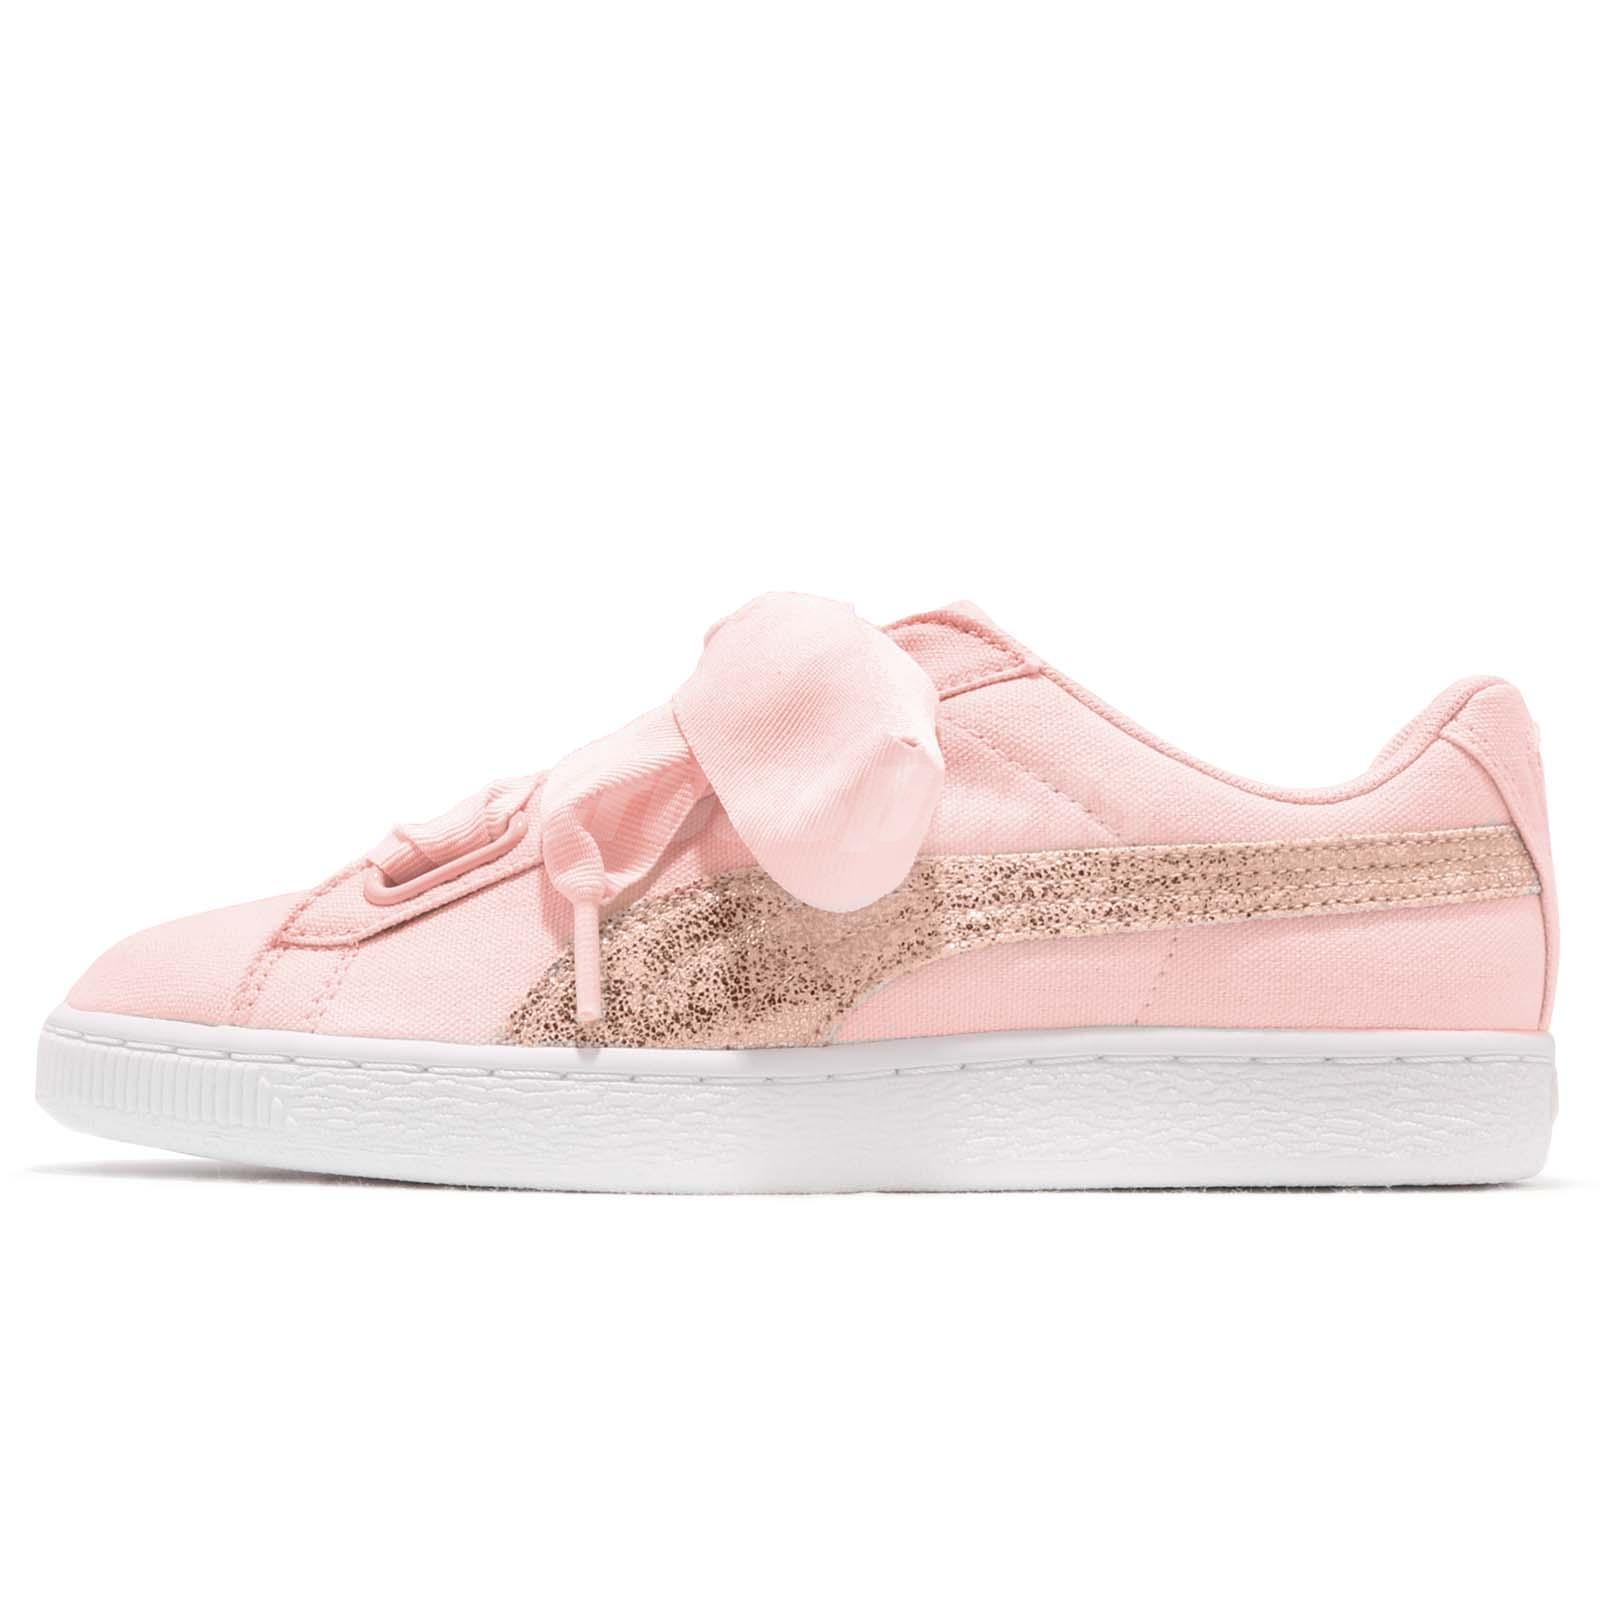 4fa8af6cf8b6ff Puma Basket Heart Canvas Wns Pearl White Rose Gold Women Casual Shoes  366495-02